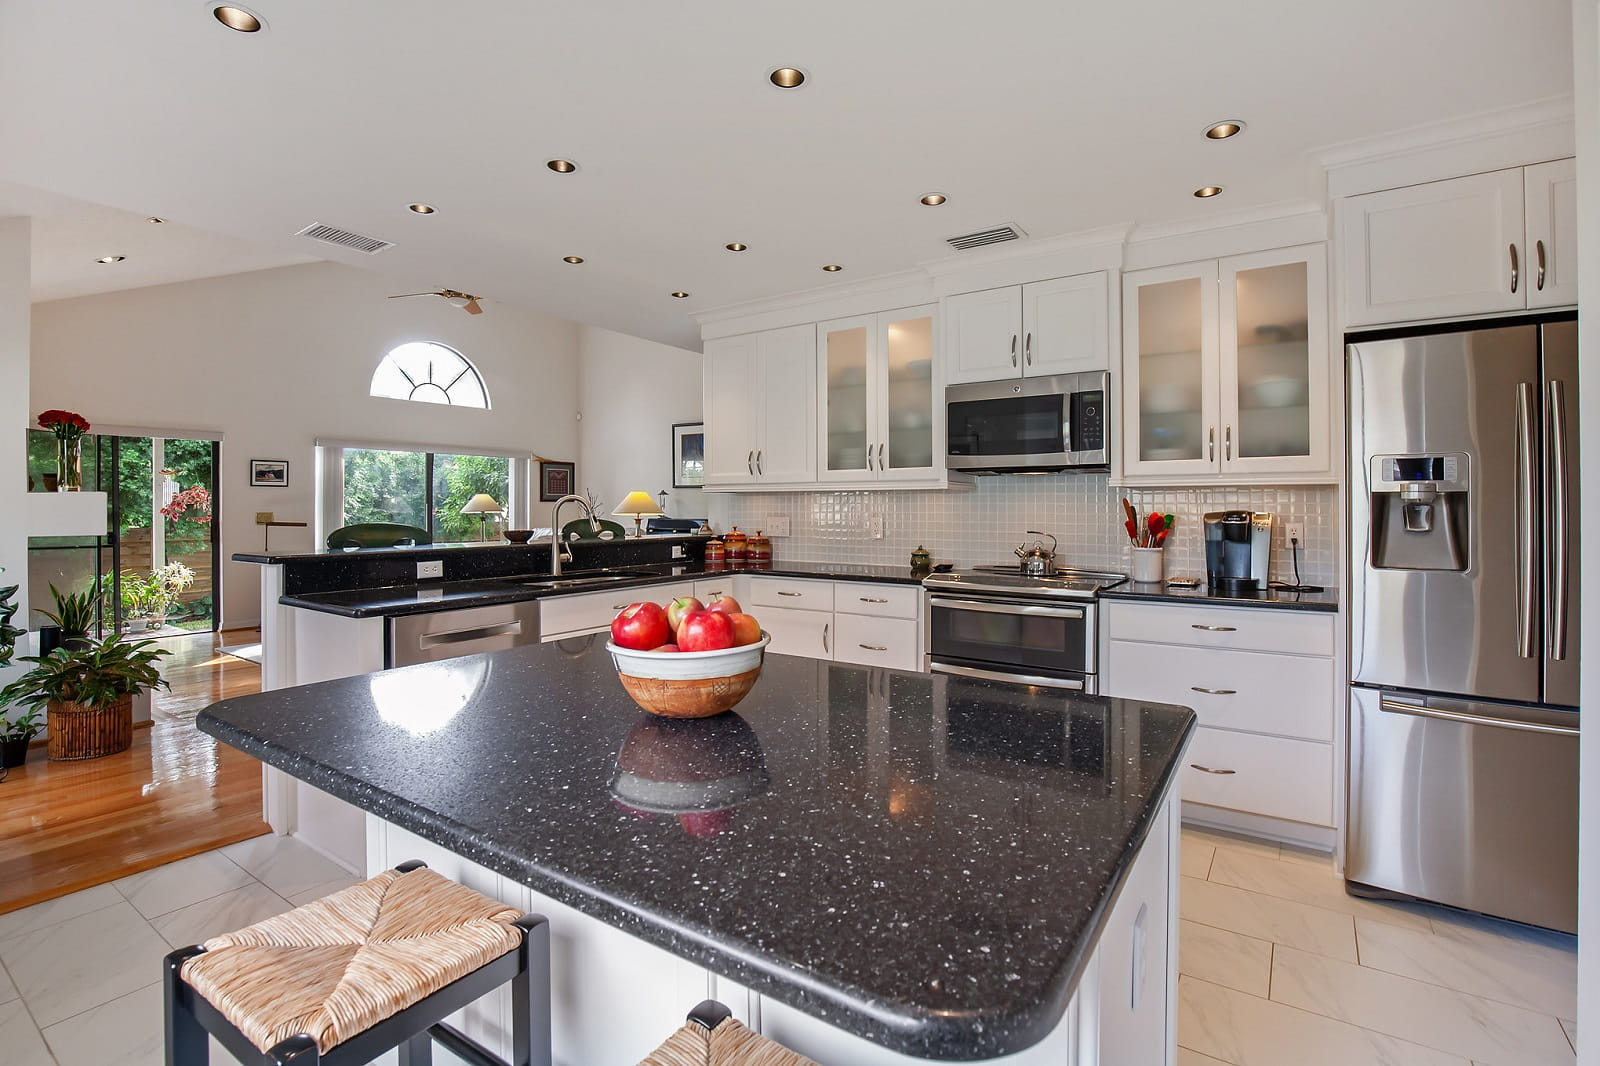 Real Estate Photography in Tampa - FL - USA - Kitchen View